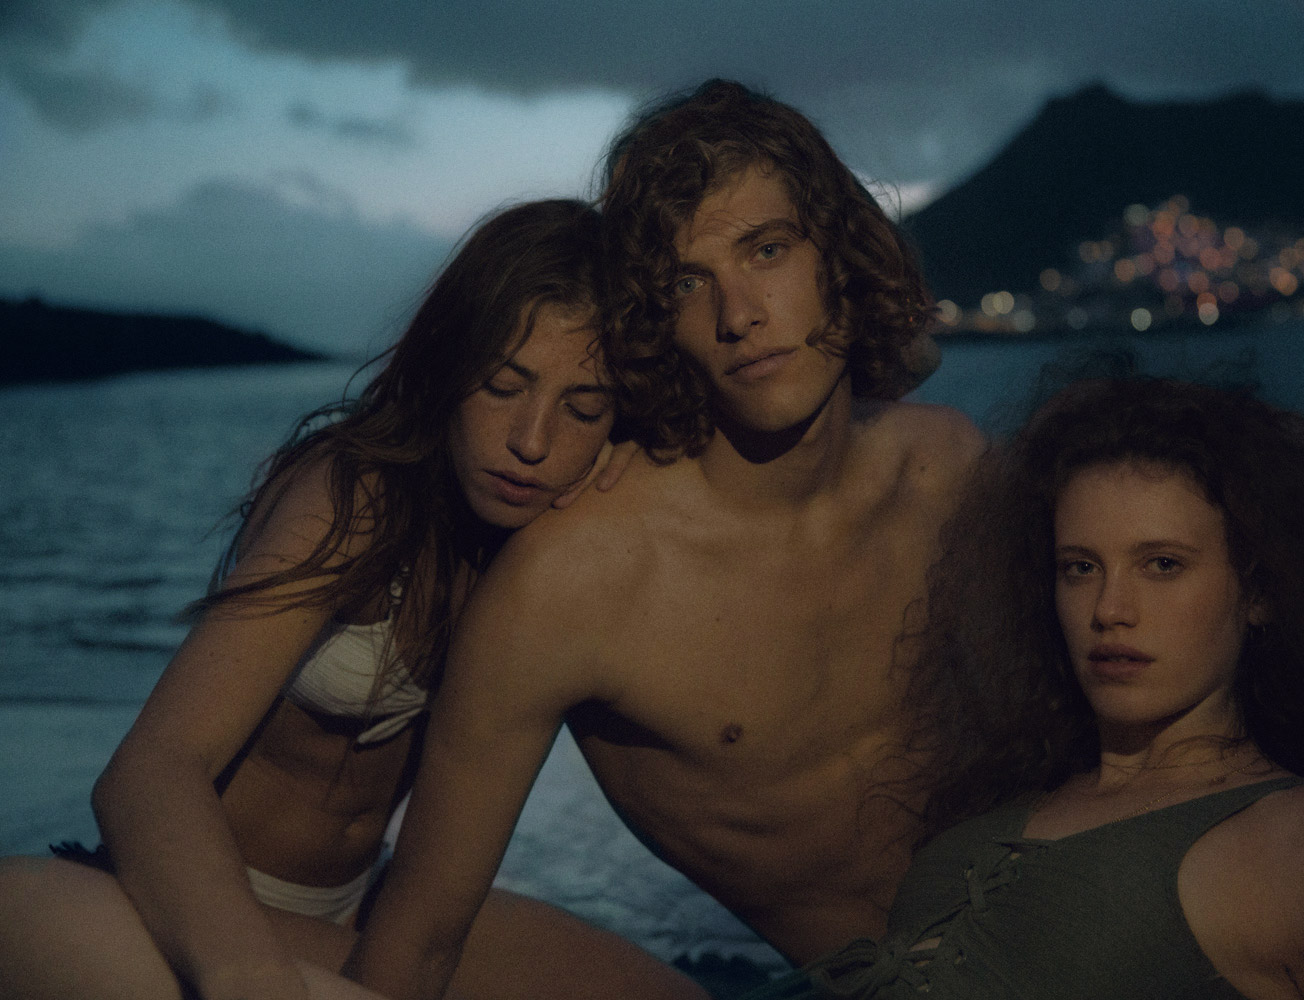 Pepe Jeans Campaign by Pablo Curto